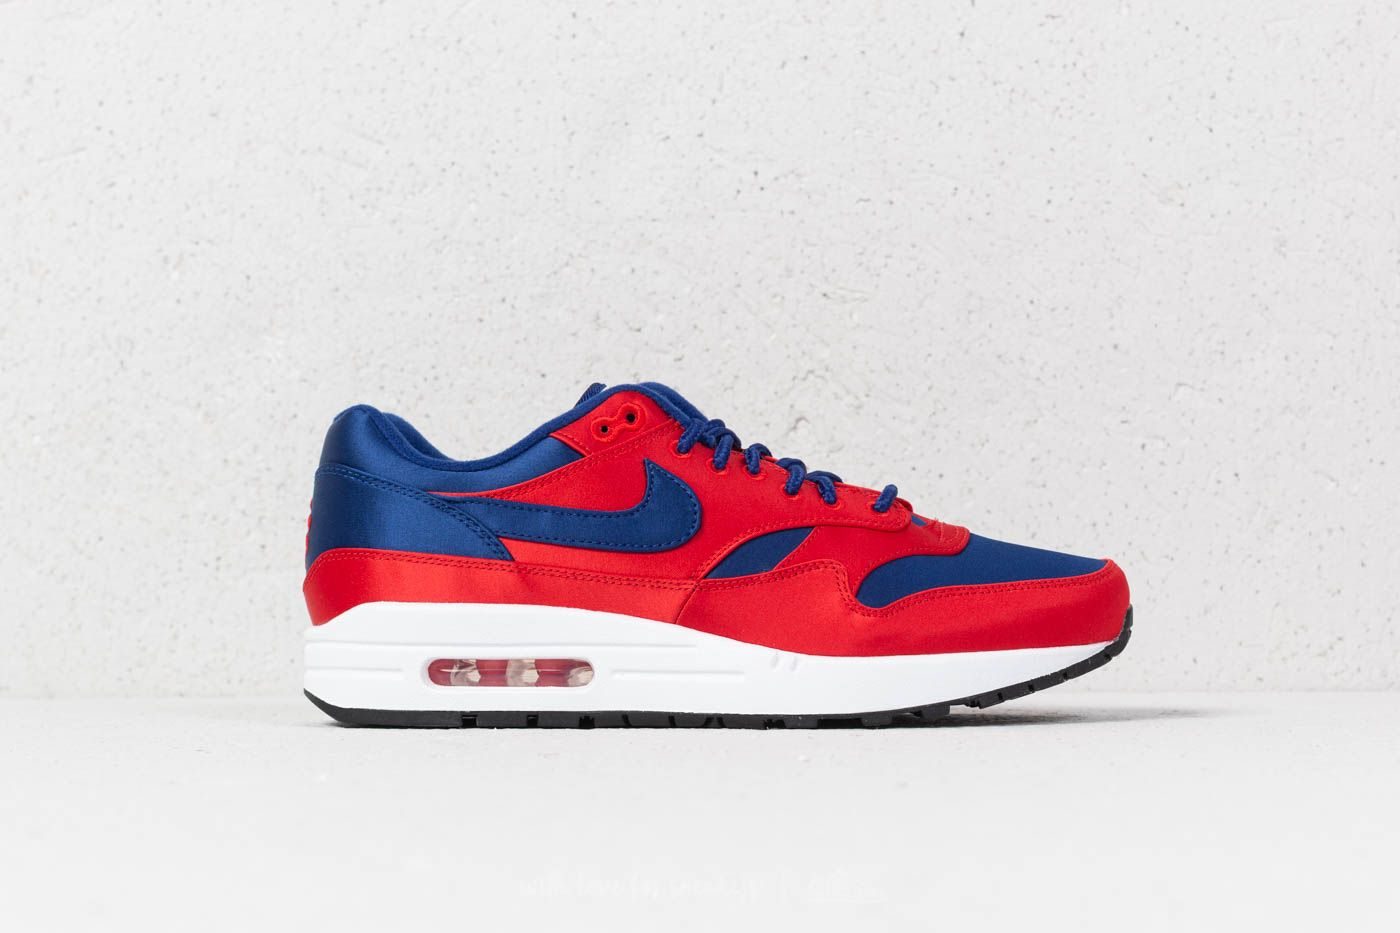 cheaper 00260 c6f8a Nike Air Max 1 SE University Red  Deep Royal Blue at a great price 139